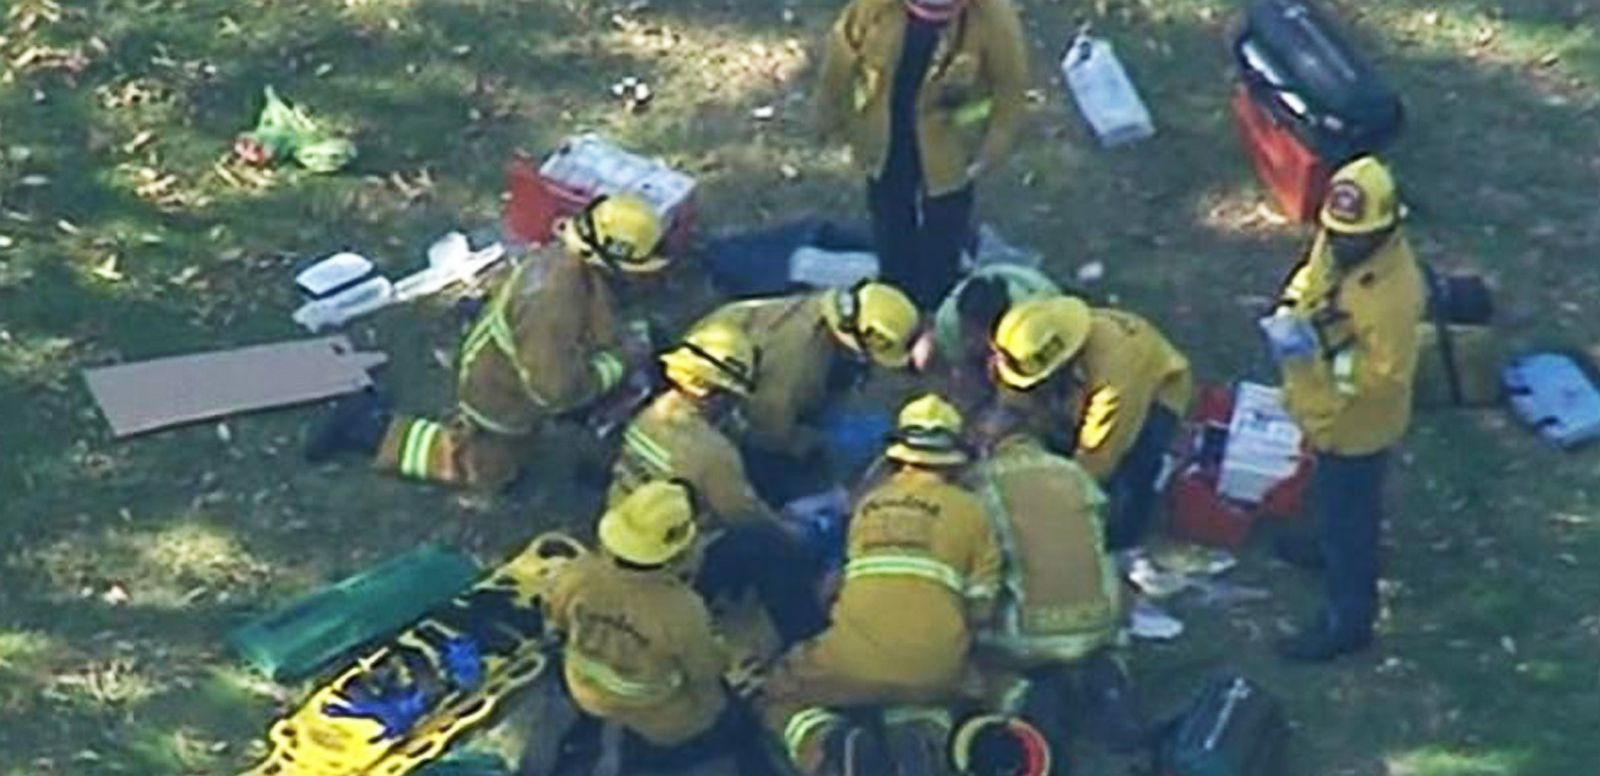 VIDEO: 8 Children Injured When Tree Falls Outside California Museum